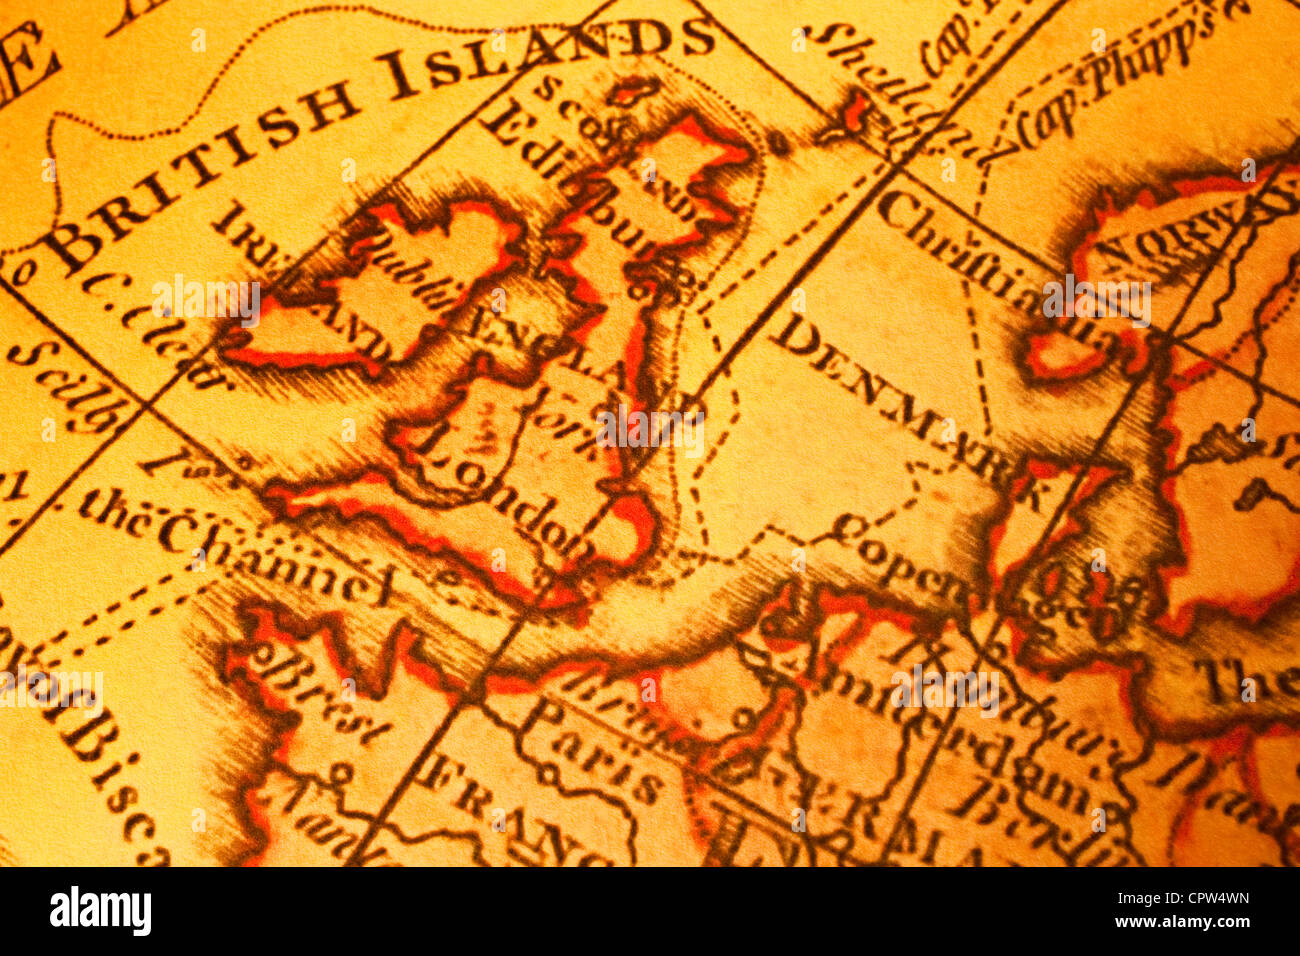 Old map uk stock photos old map uk stock images alamy old map of britain british isles uk united kngdom and northern europe map is from gumiabroncs Gallery